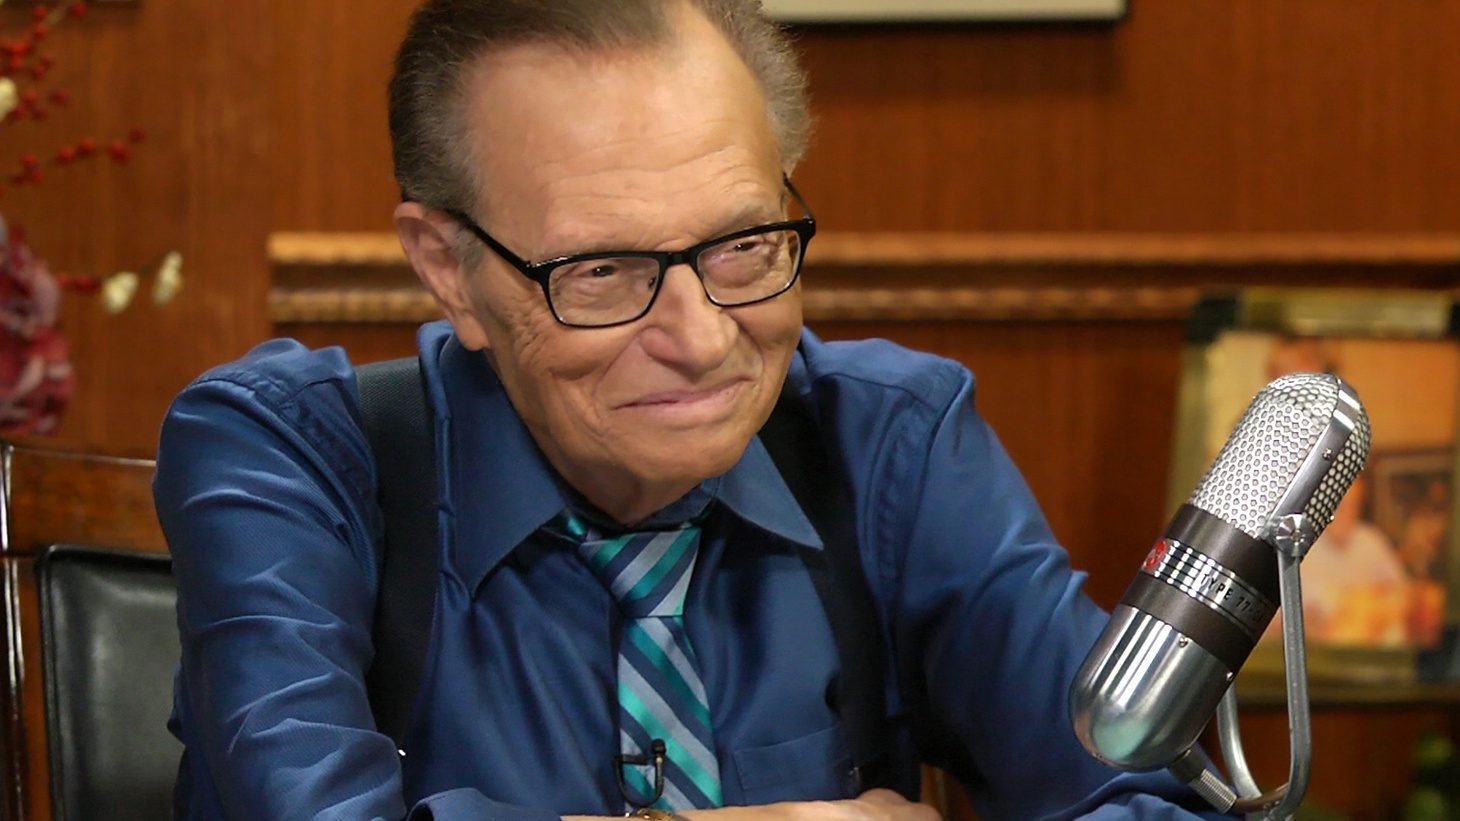 Legendary broadcaster Larry King got his start as a disc jockey in Miami. He has a great affection for music, particularly American classics like Frank Sinatra, and tells us tales about wooing women and launching his career.